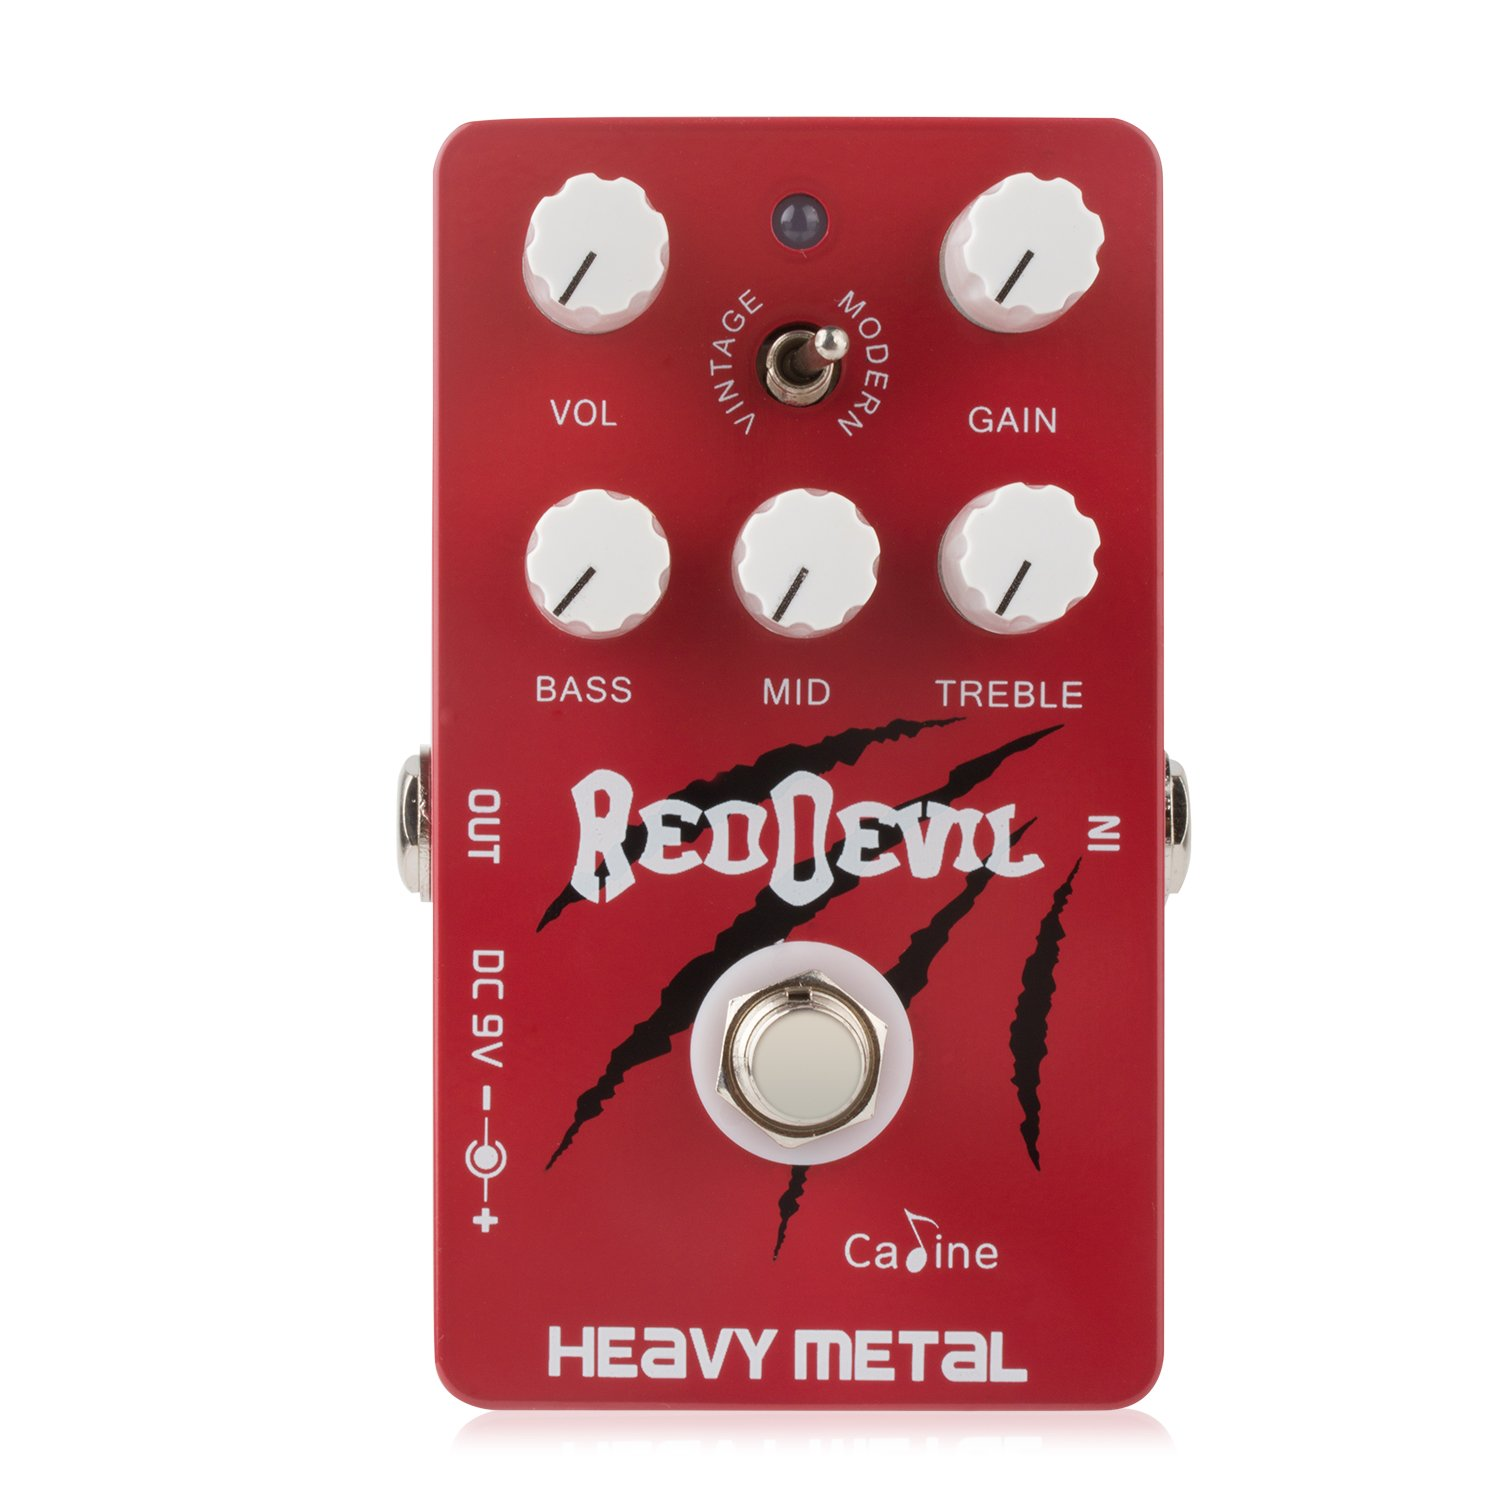 Caline Red Devil Heavy Metal Guitar Effect Pedal with Aluminum Alloy Housing True Bypass Giho